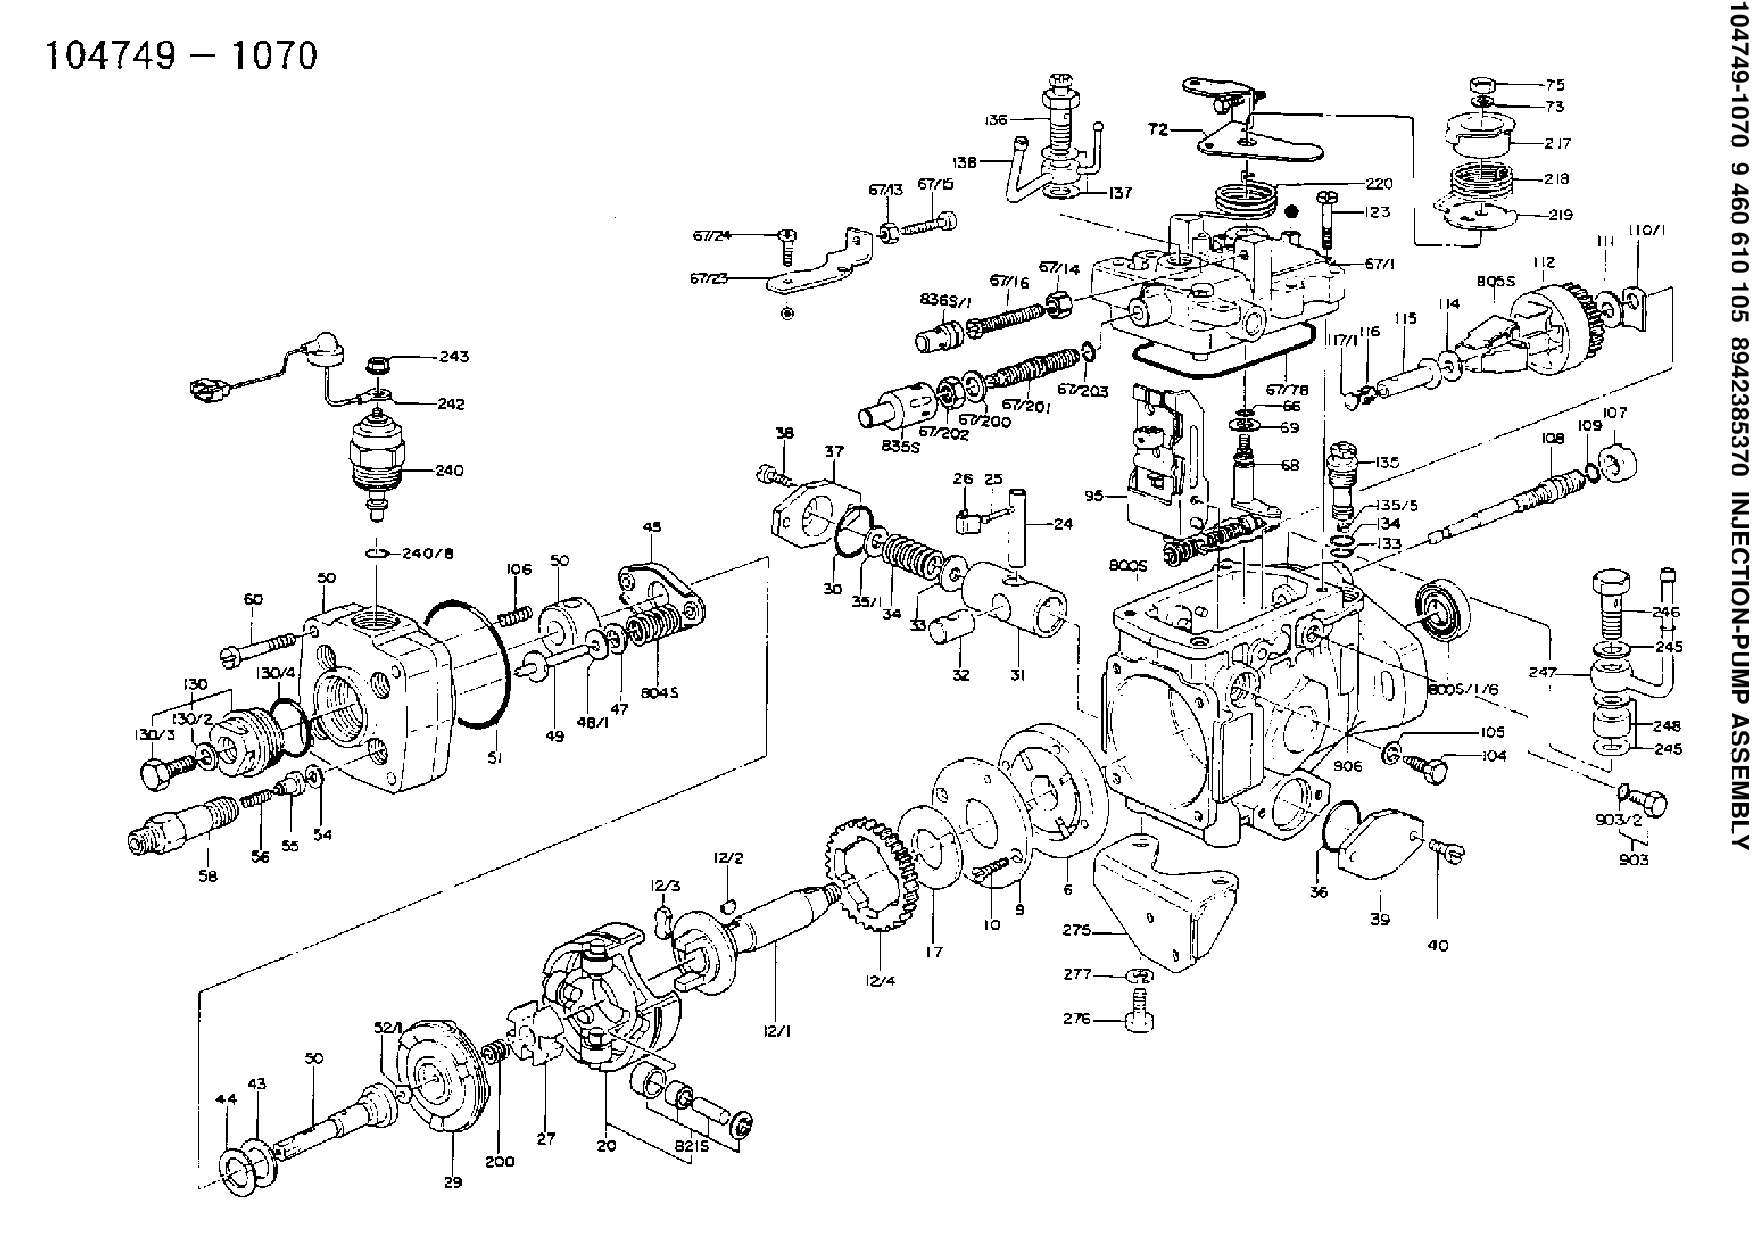 Kubota D1005 Engine Parts Manual